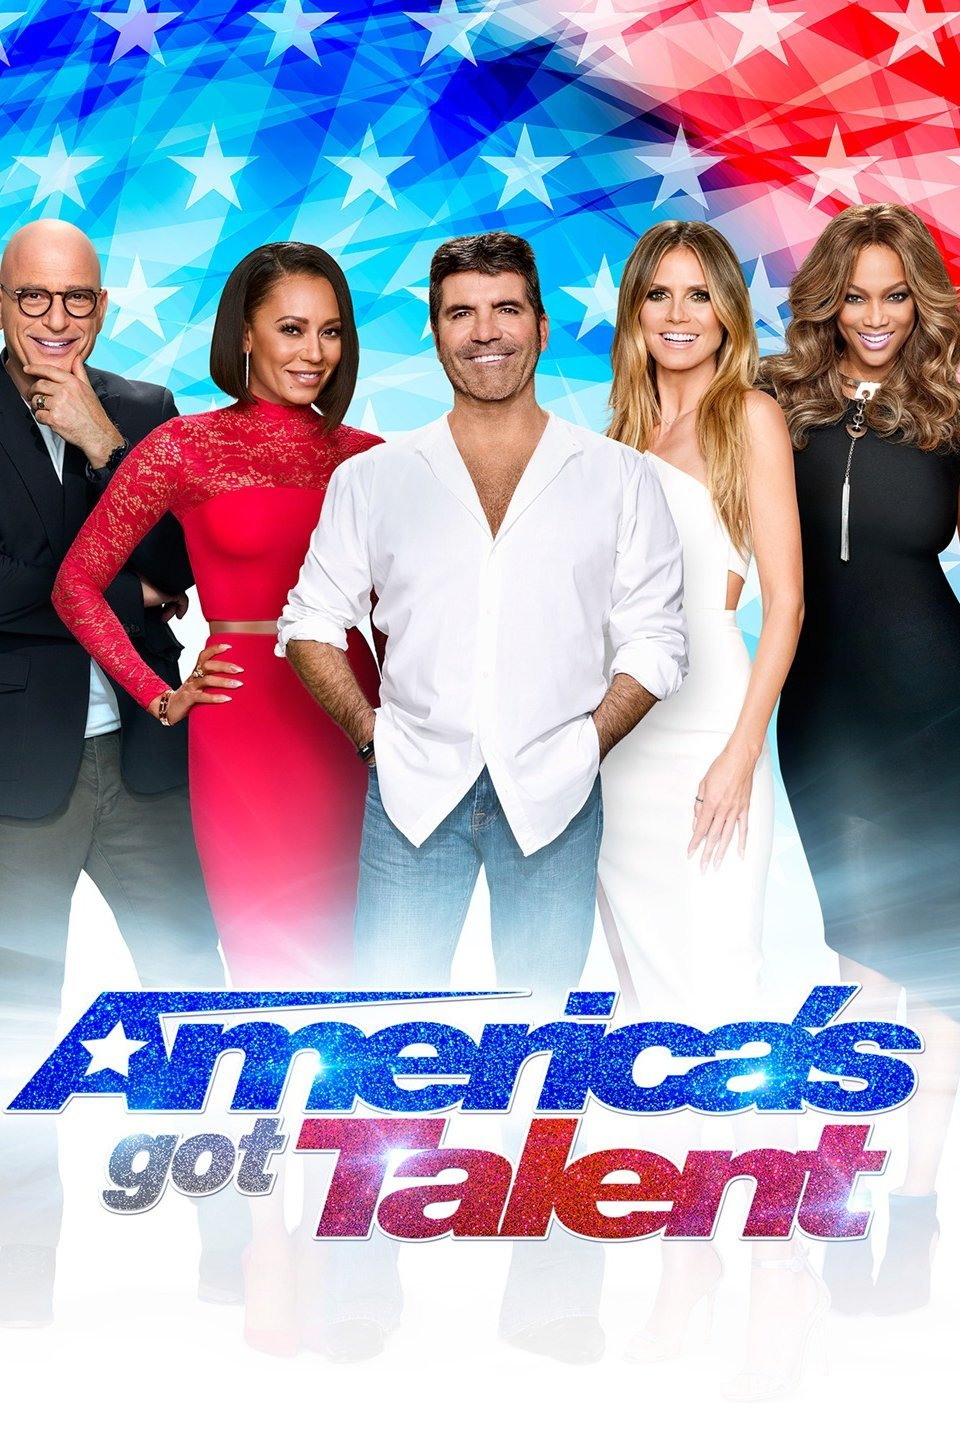 America's Got Talent Season 12 Episode 5 Download HDTV 480p & 720p